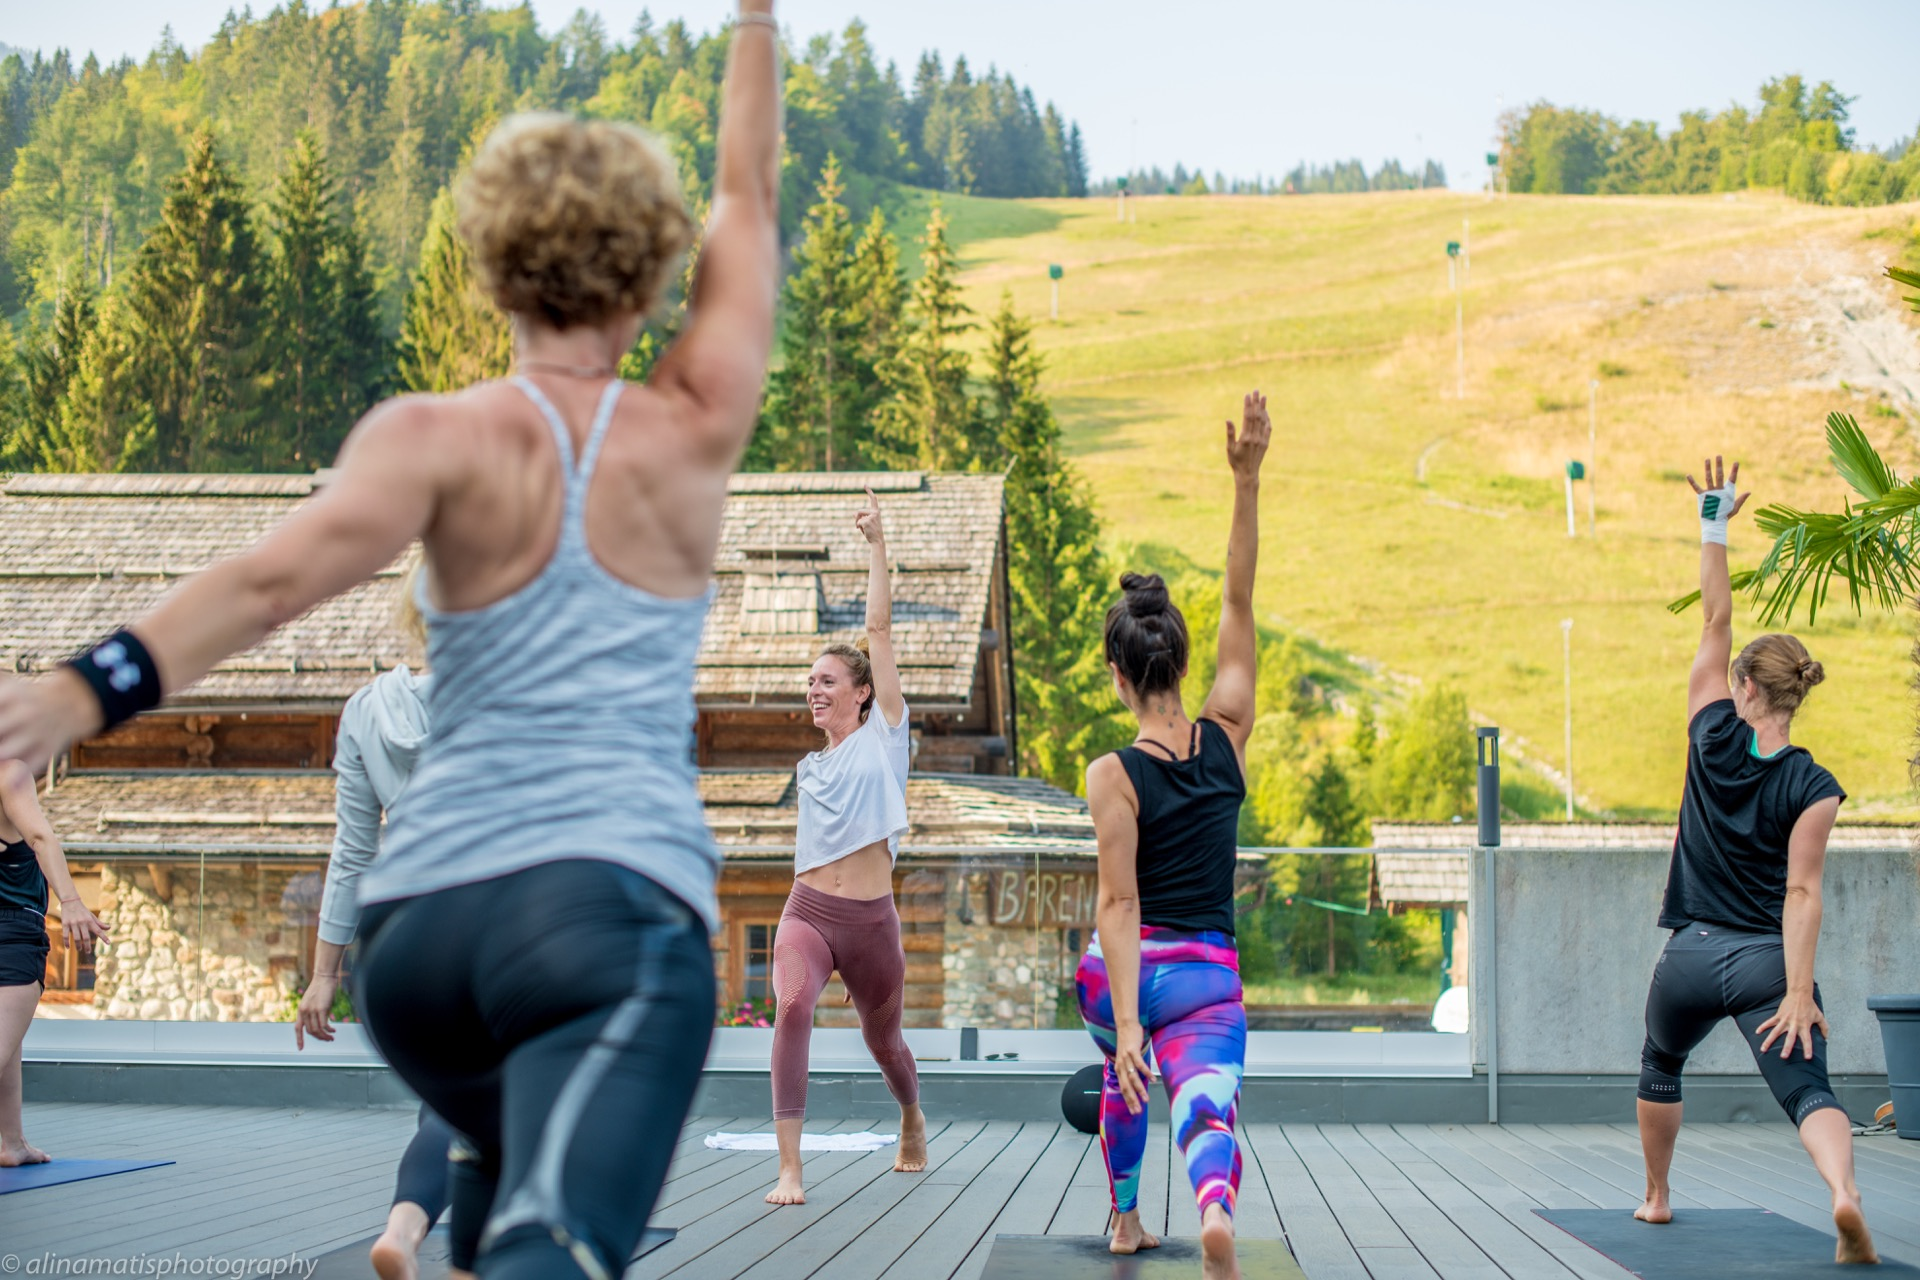 Hie-Kim-Friends-2018-Yoga-Retreat-Alina-Matis-Photography-077 - Hie Kim Yoga - Yoga Retreat - Yoga Workshops und Reisen